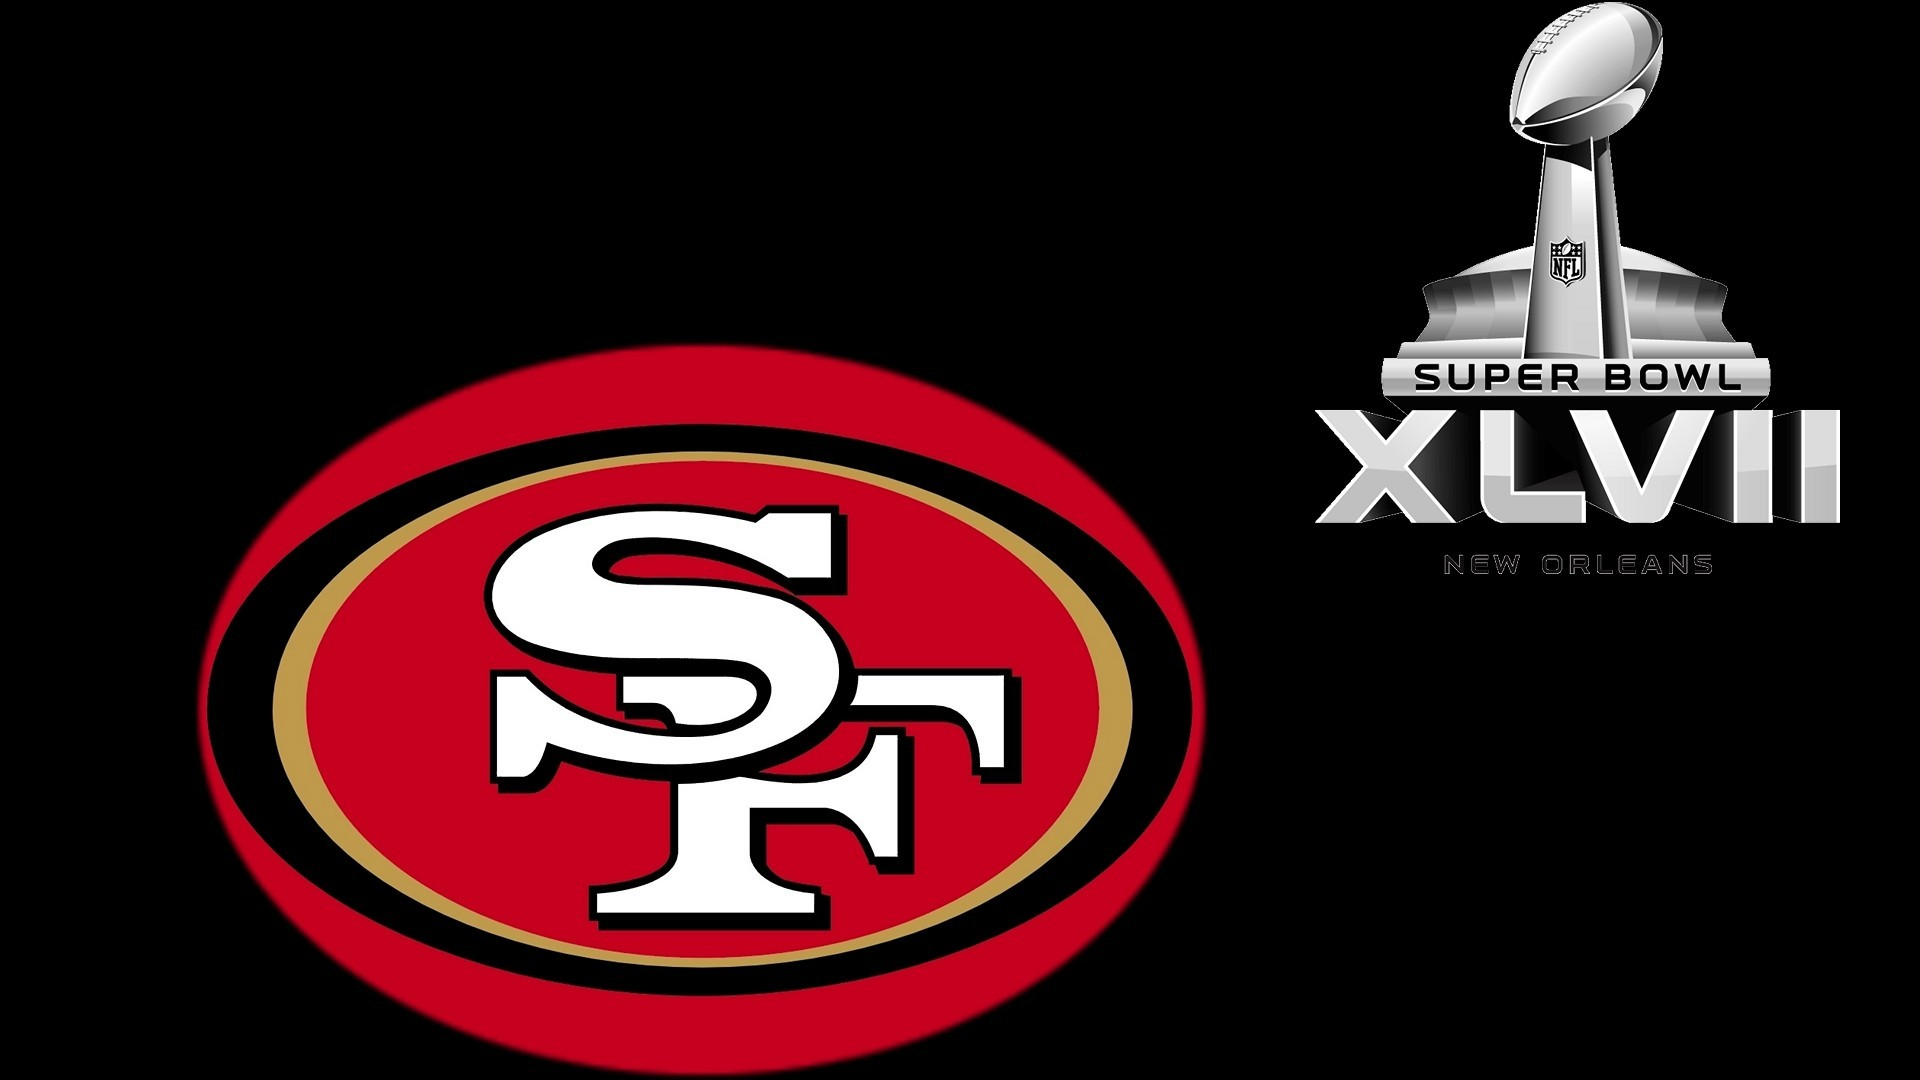 1920x1080 san francisco 49ers are in super bowl xlvii